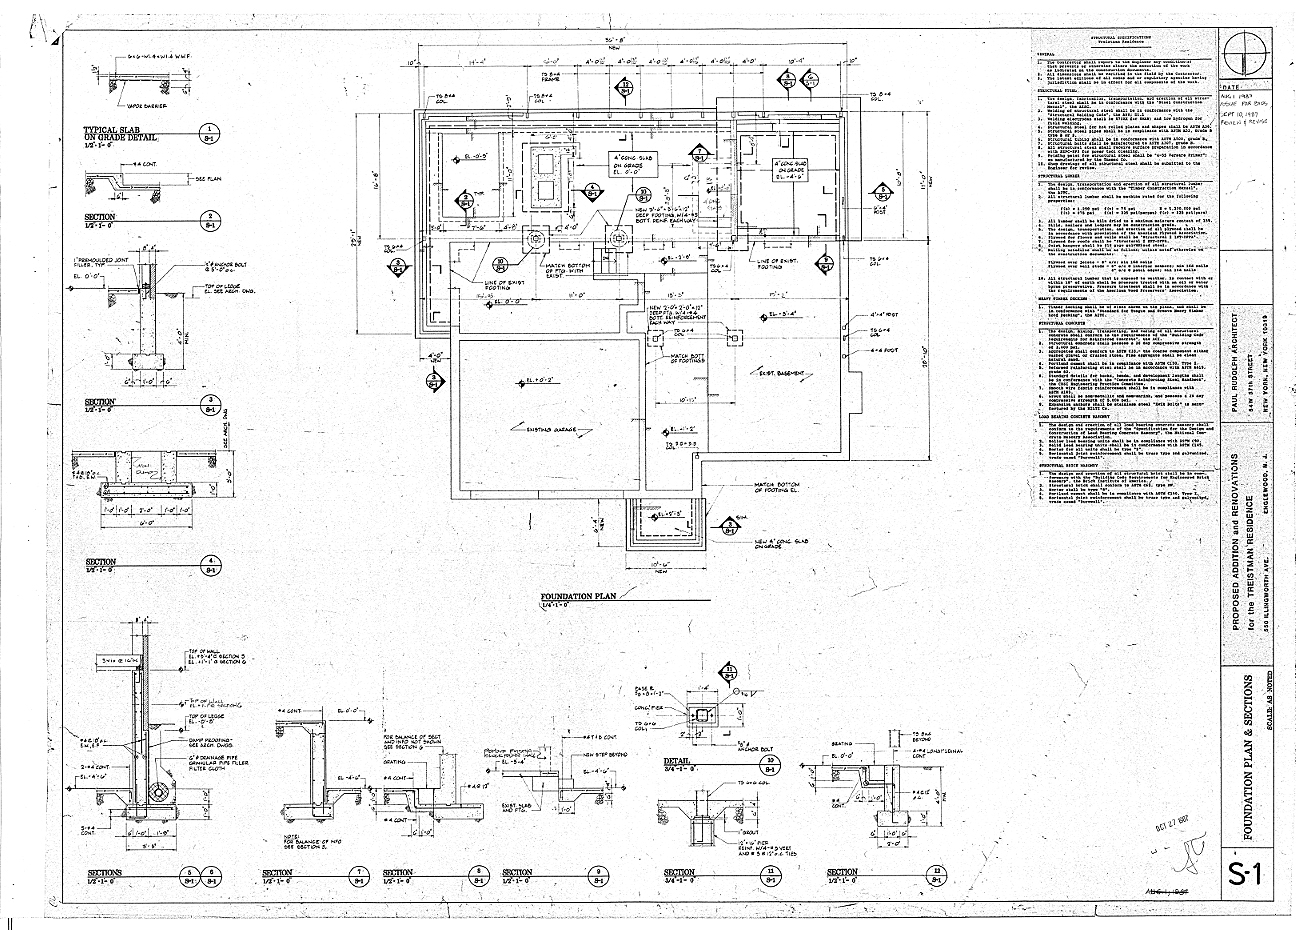 Residence for Mr. and Mrs. Treistman, Englewood, New Jersey.  Foundation Plan, Details, Sheet S1.